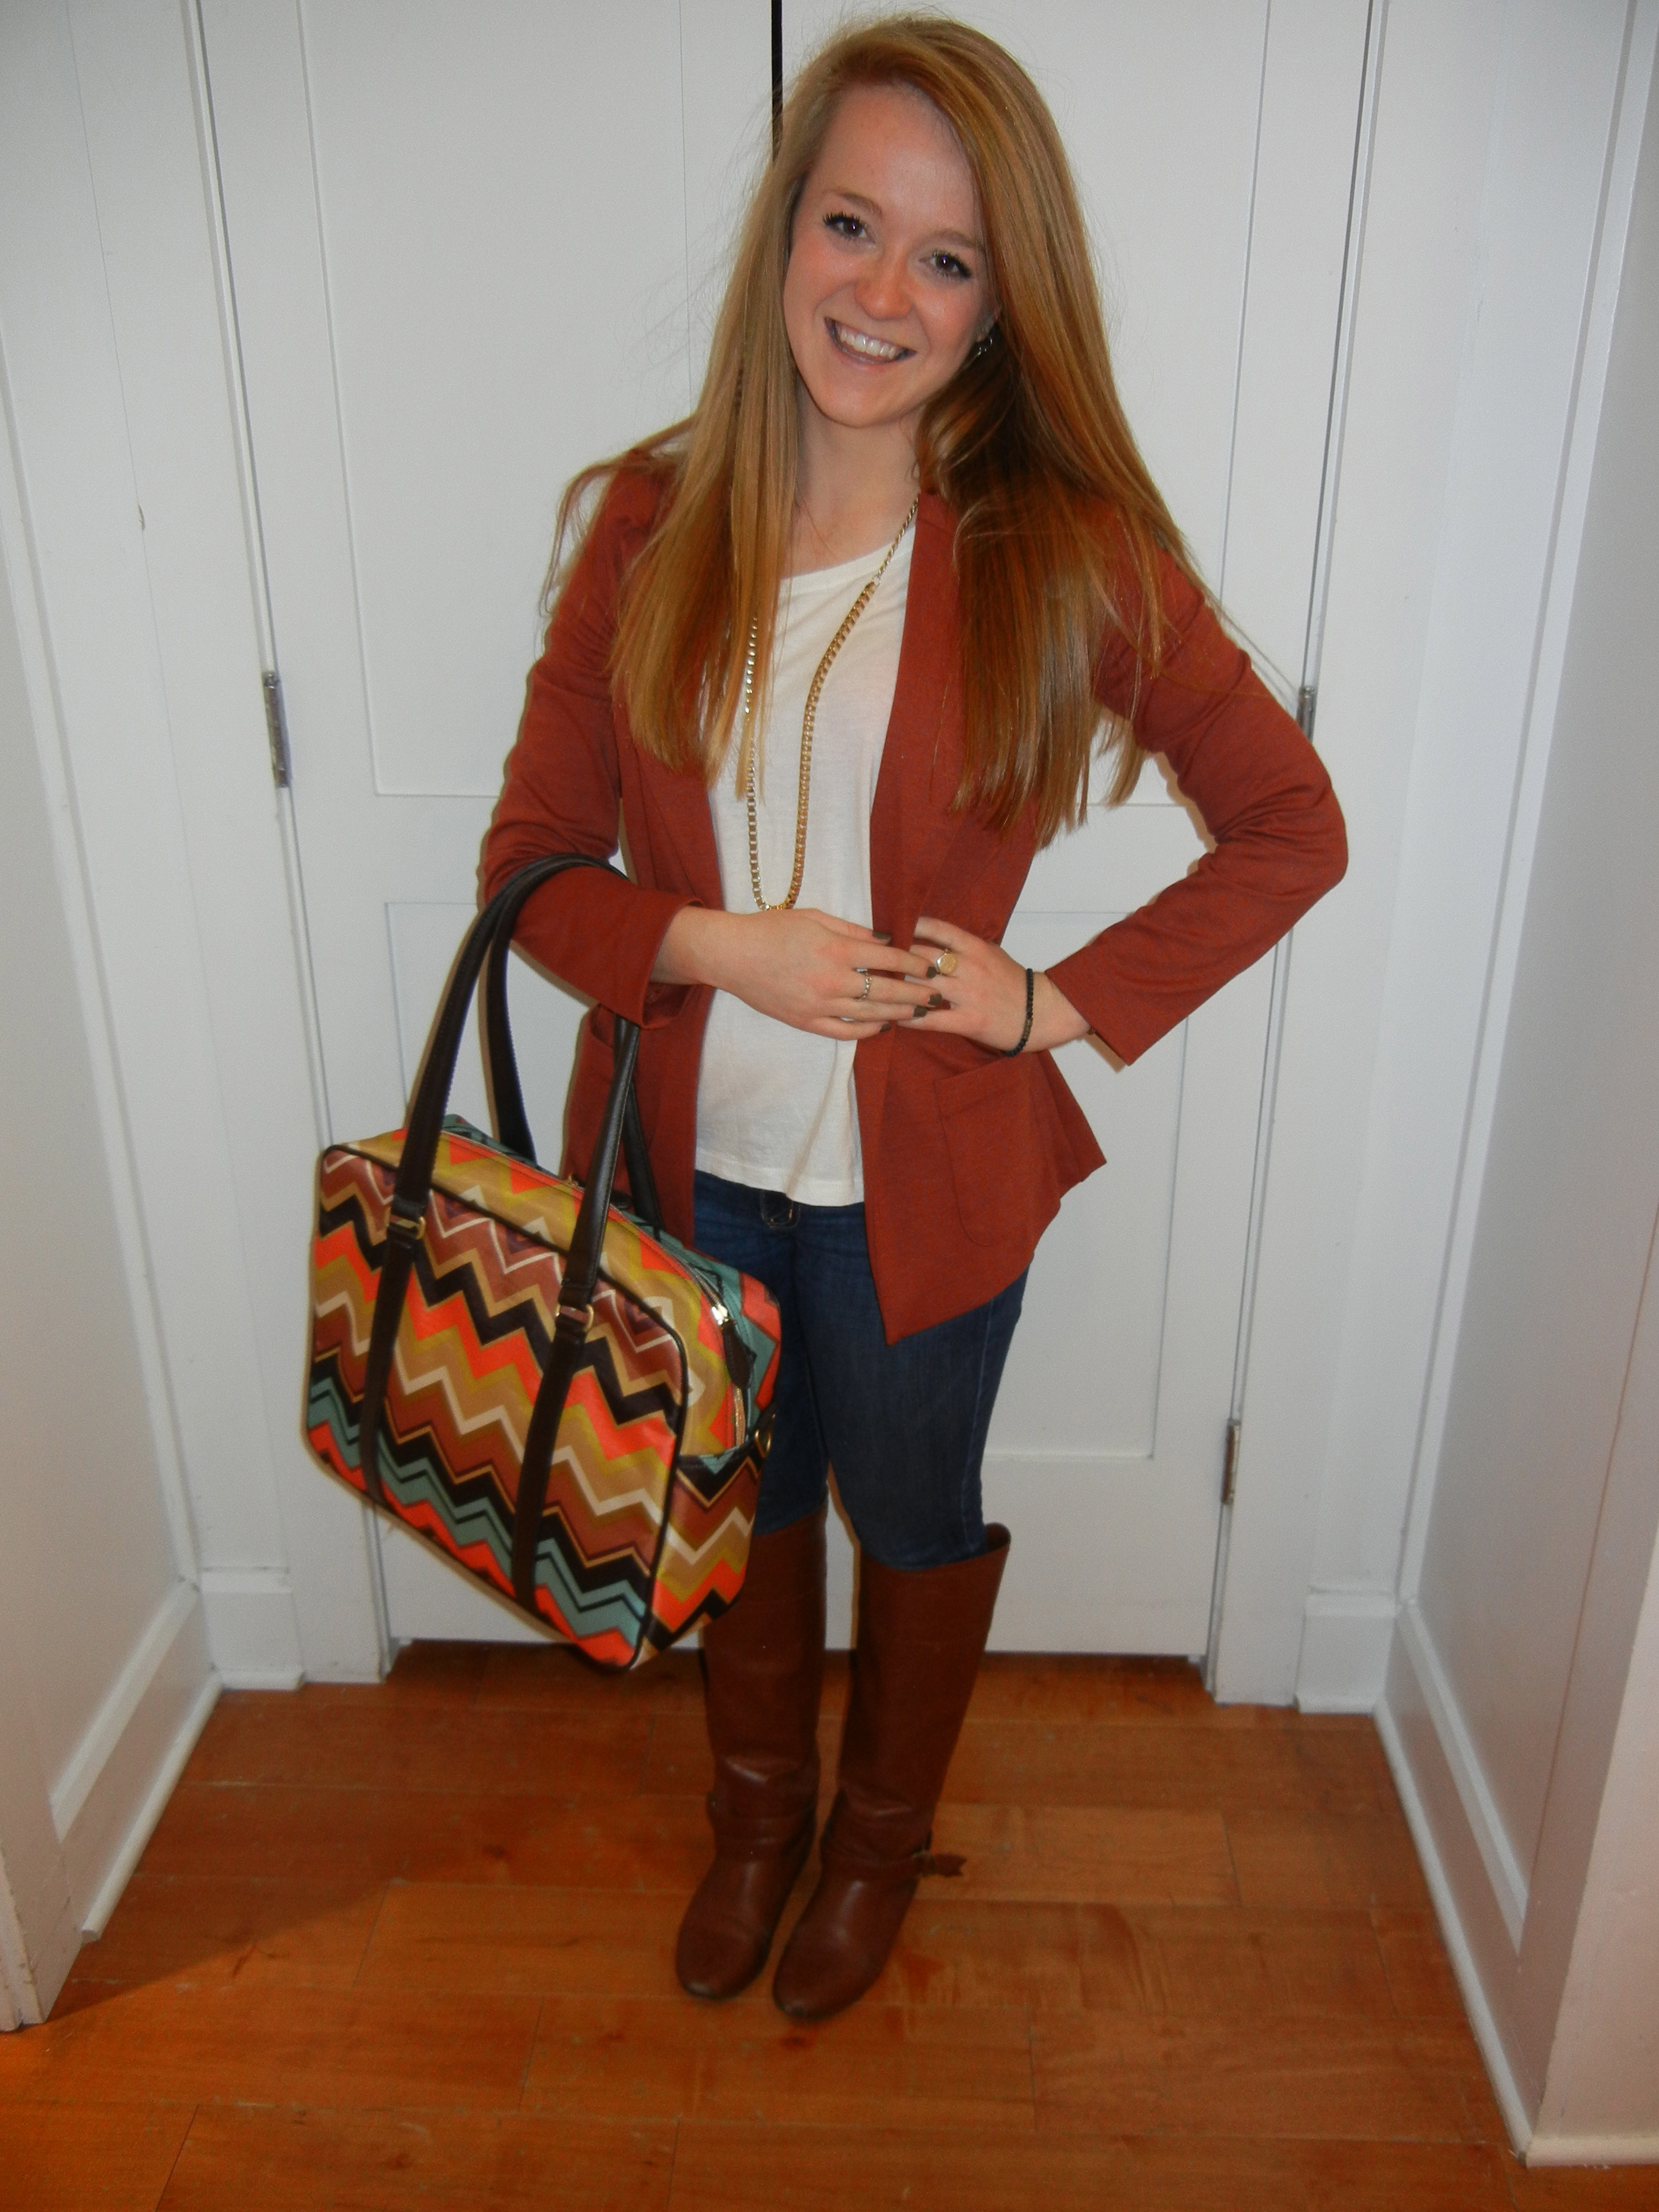 meet my style soulmate danica thestyleannalyst job s associate at american eagle outfitters store 234 baby what i was wearing today white long sleeve top forever 21 rust blazer forever 21